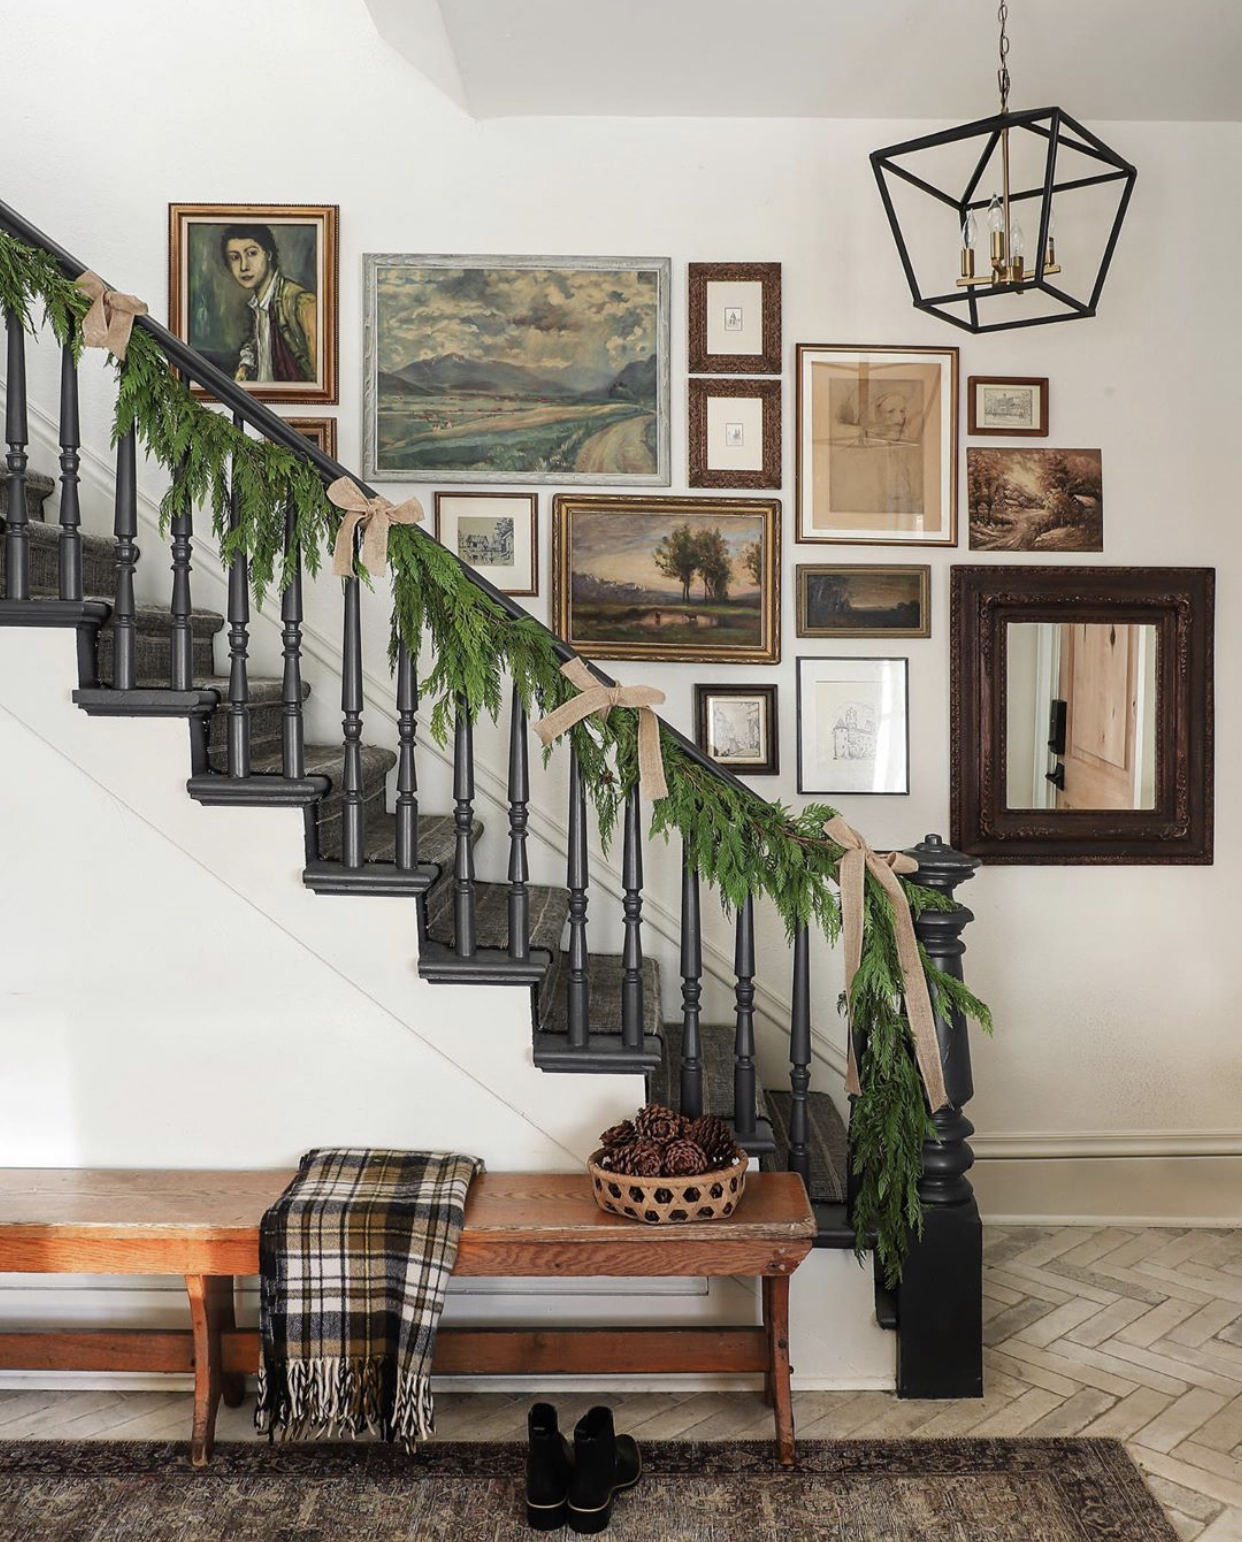 17 Amazing Christmas Decorating Ideas For All Rooms: Insta-Inspiration: Christmas Decorating